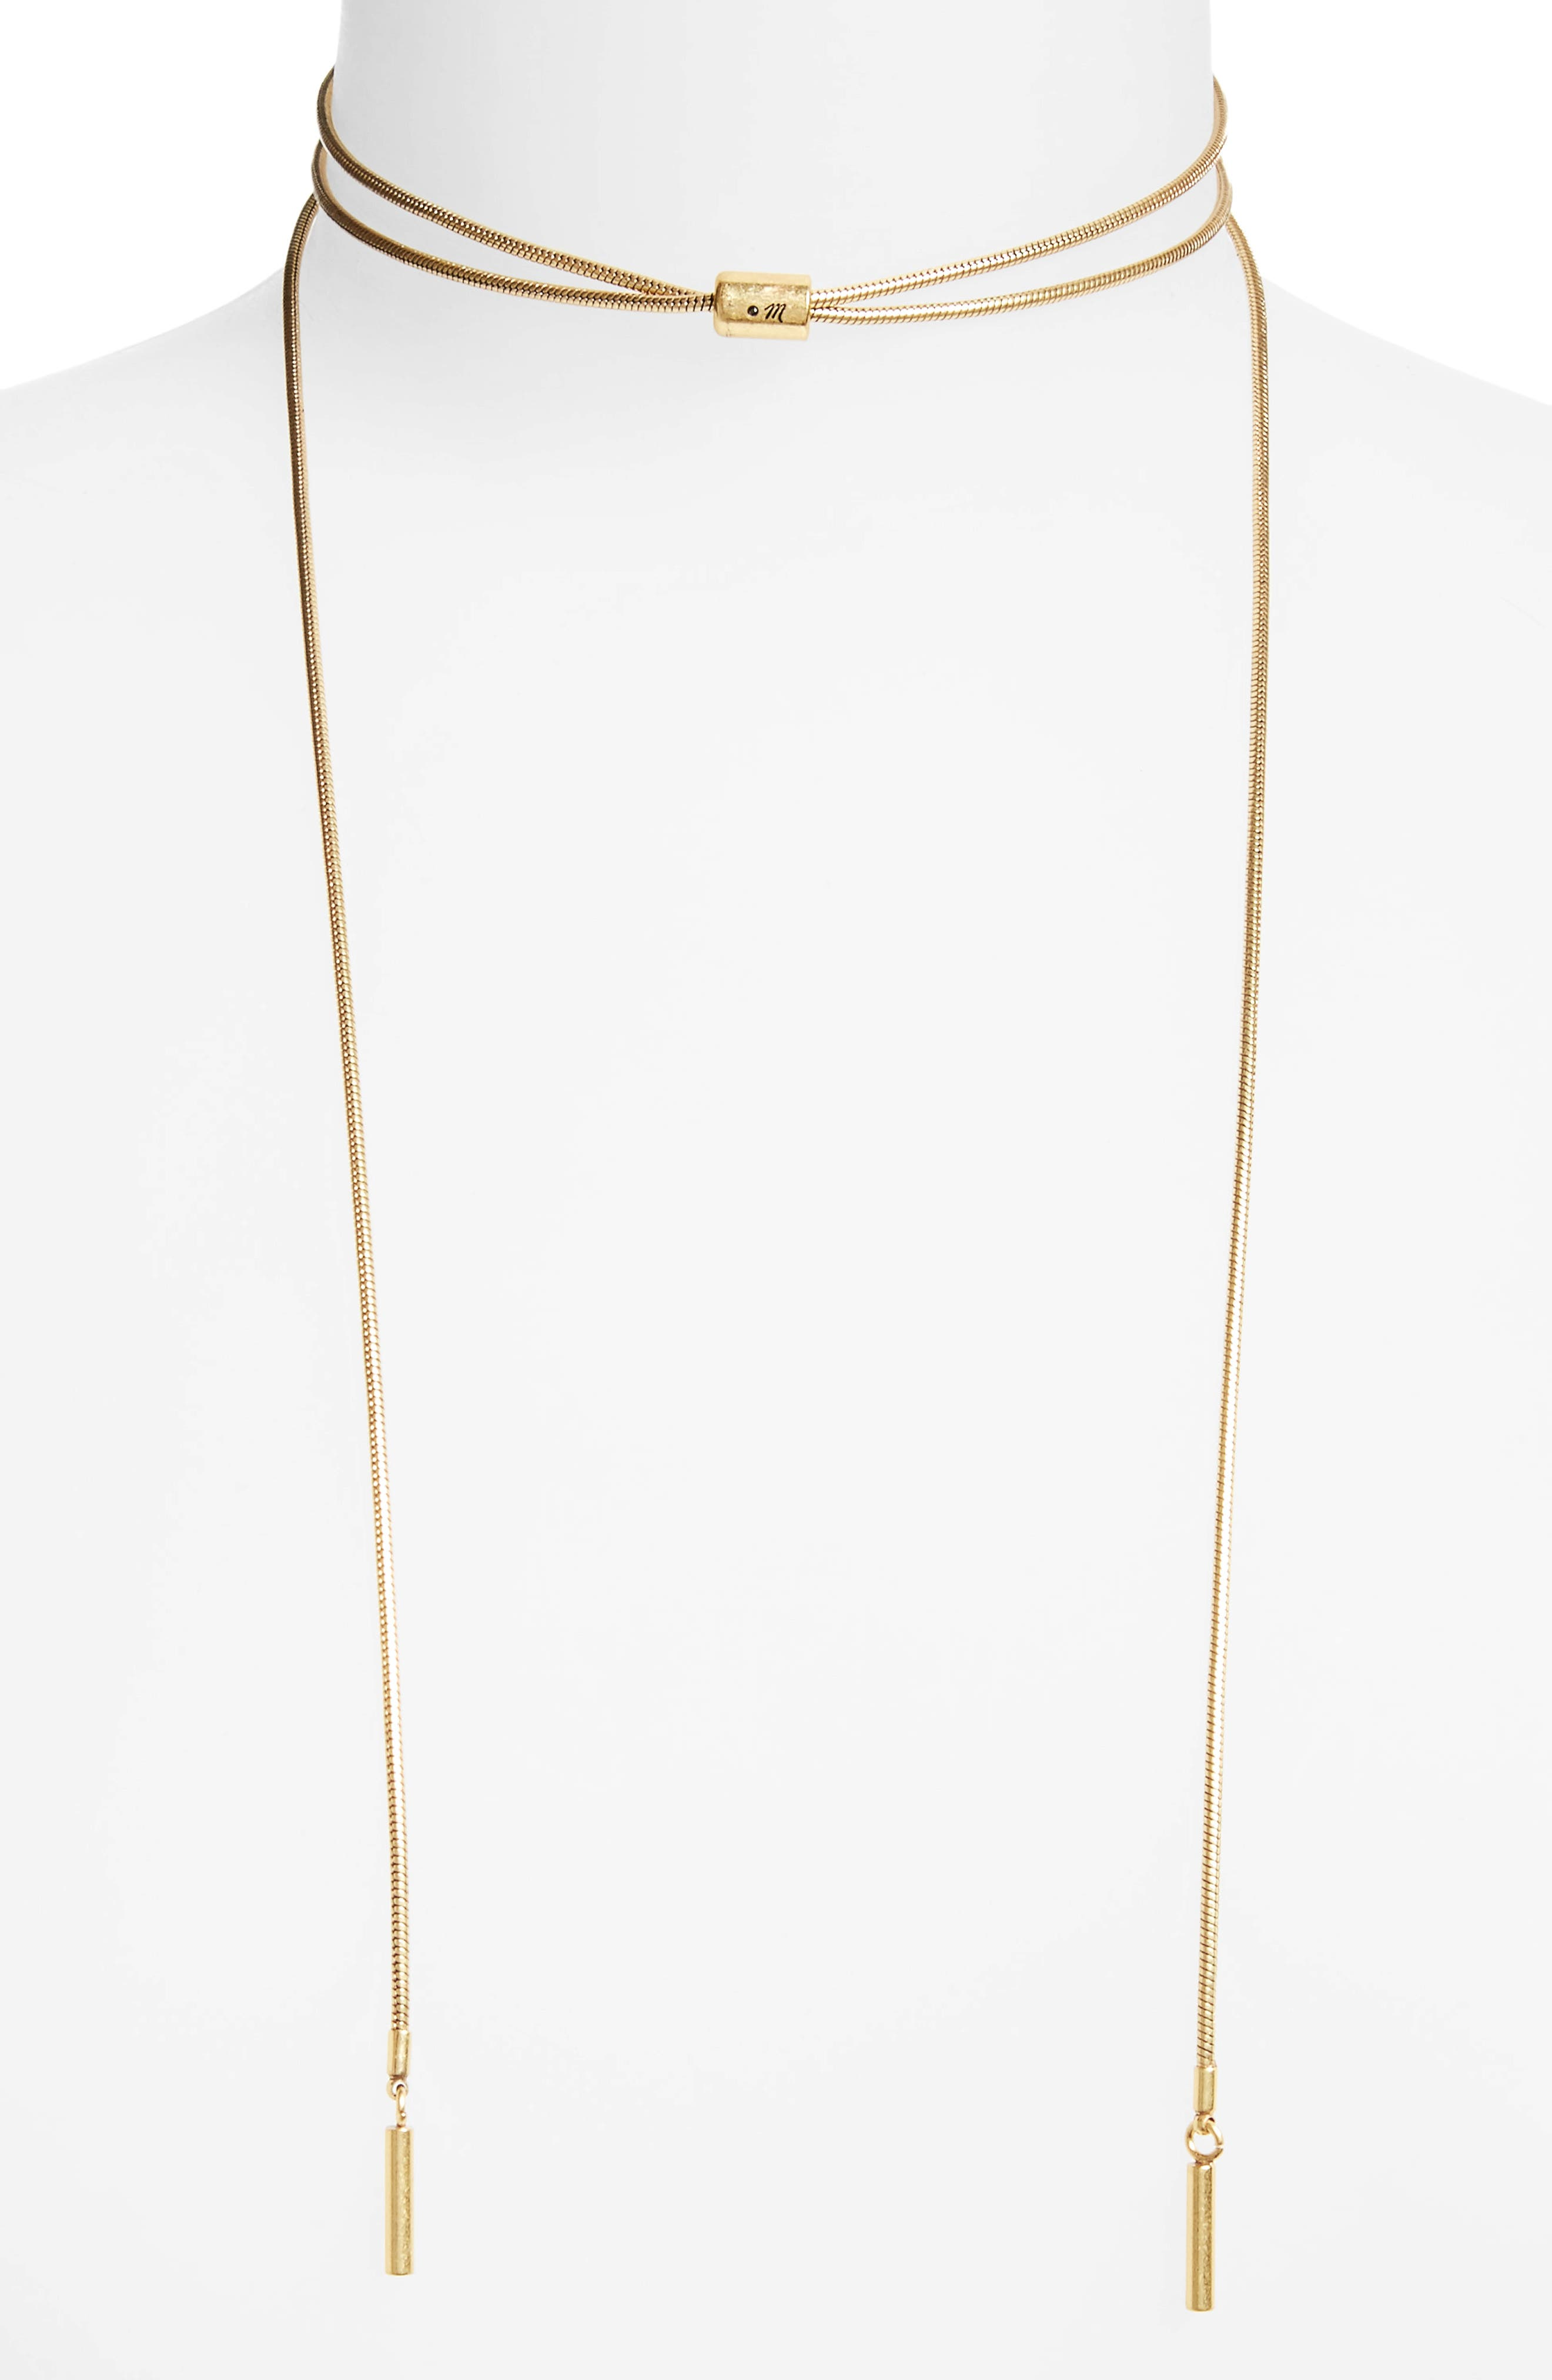 Madewell Bolo Wrap Necklace